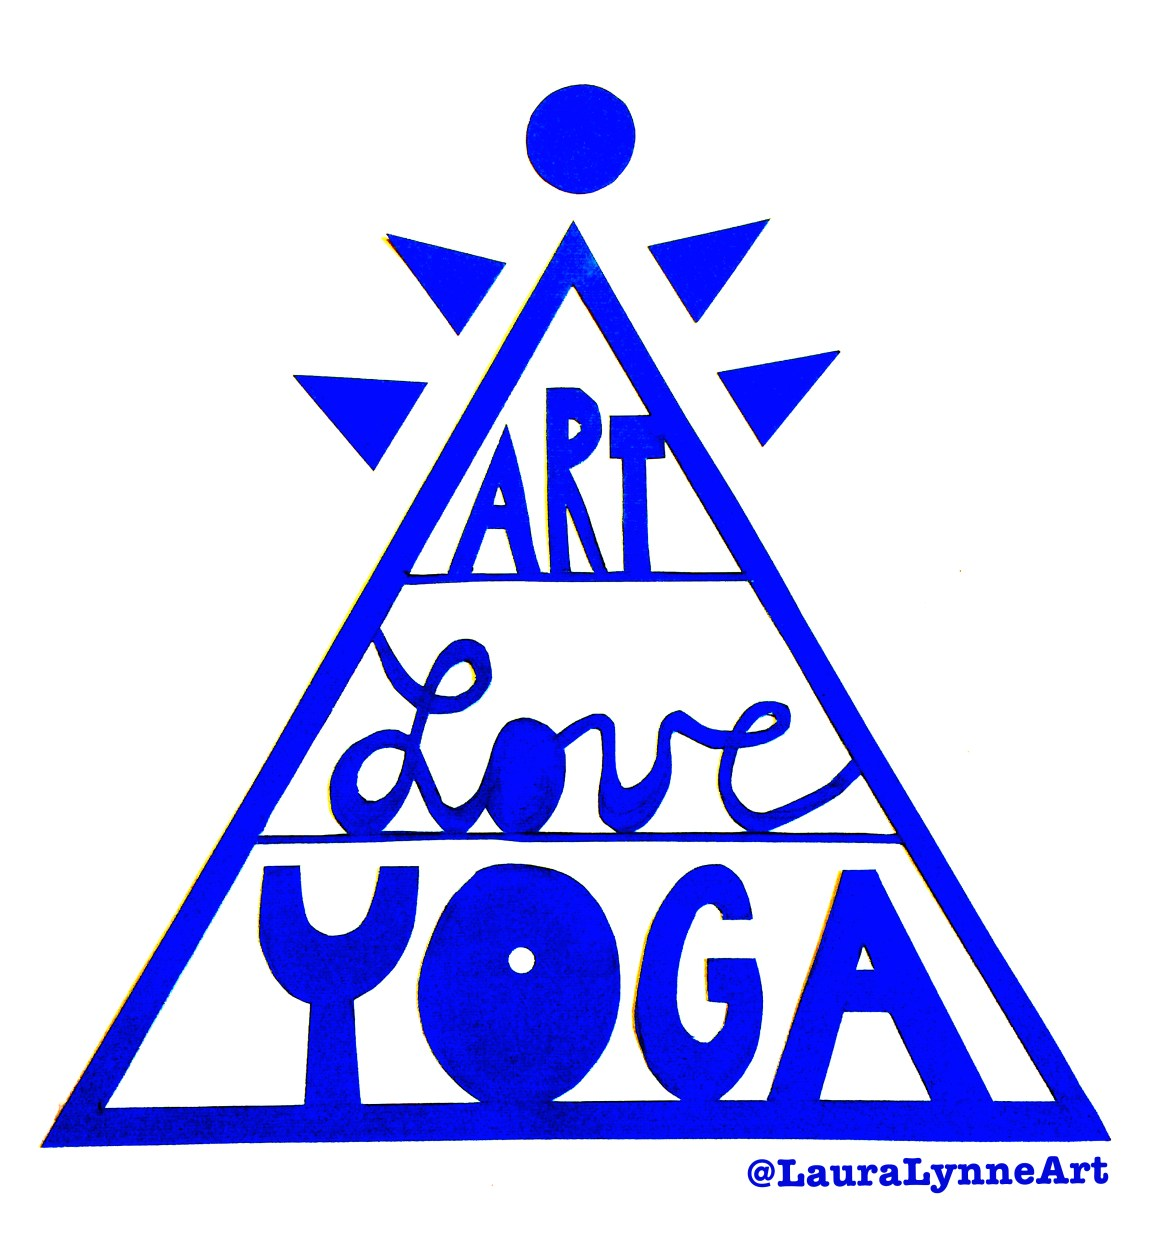 Yoga and Love help to make room for great creativity. T-shirt design and philosophy